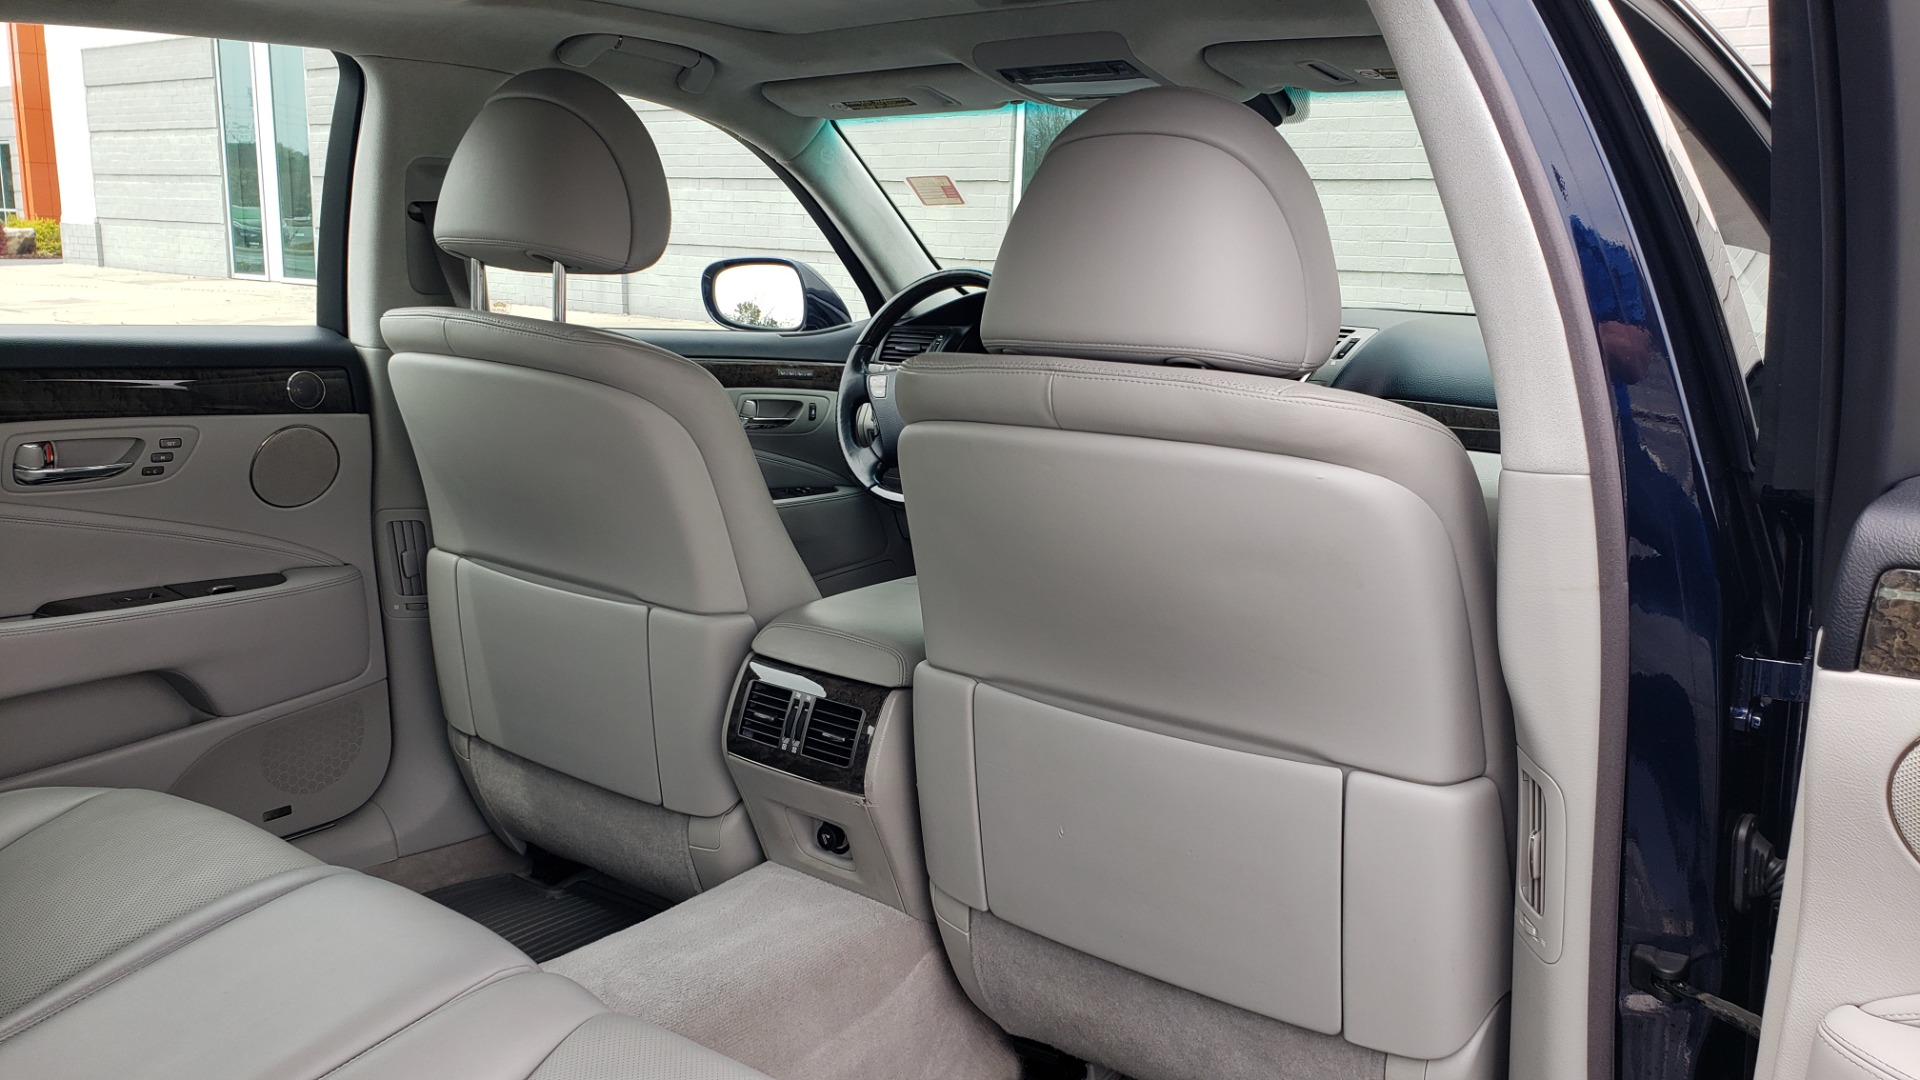 Used 2008 Lexus LS 460 LWB LUXURY SEDAN / MARK LEVINSON / INT PARK ASST / REARVIEW for sale Sold at Formula Imports in Charlotte NC 28227 74